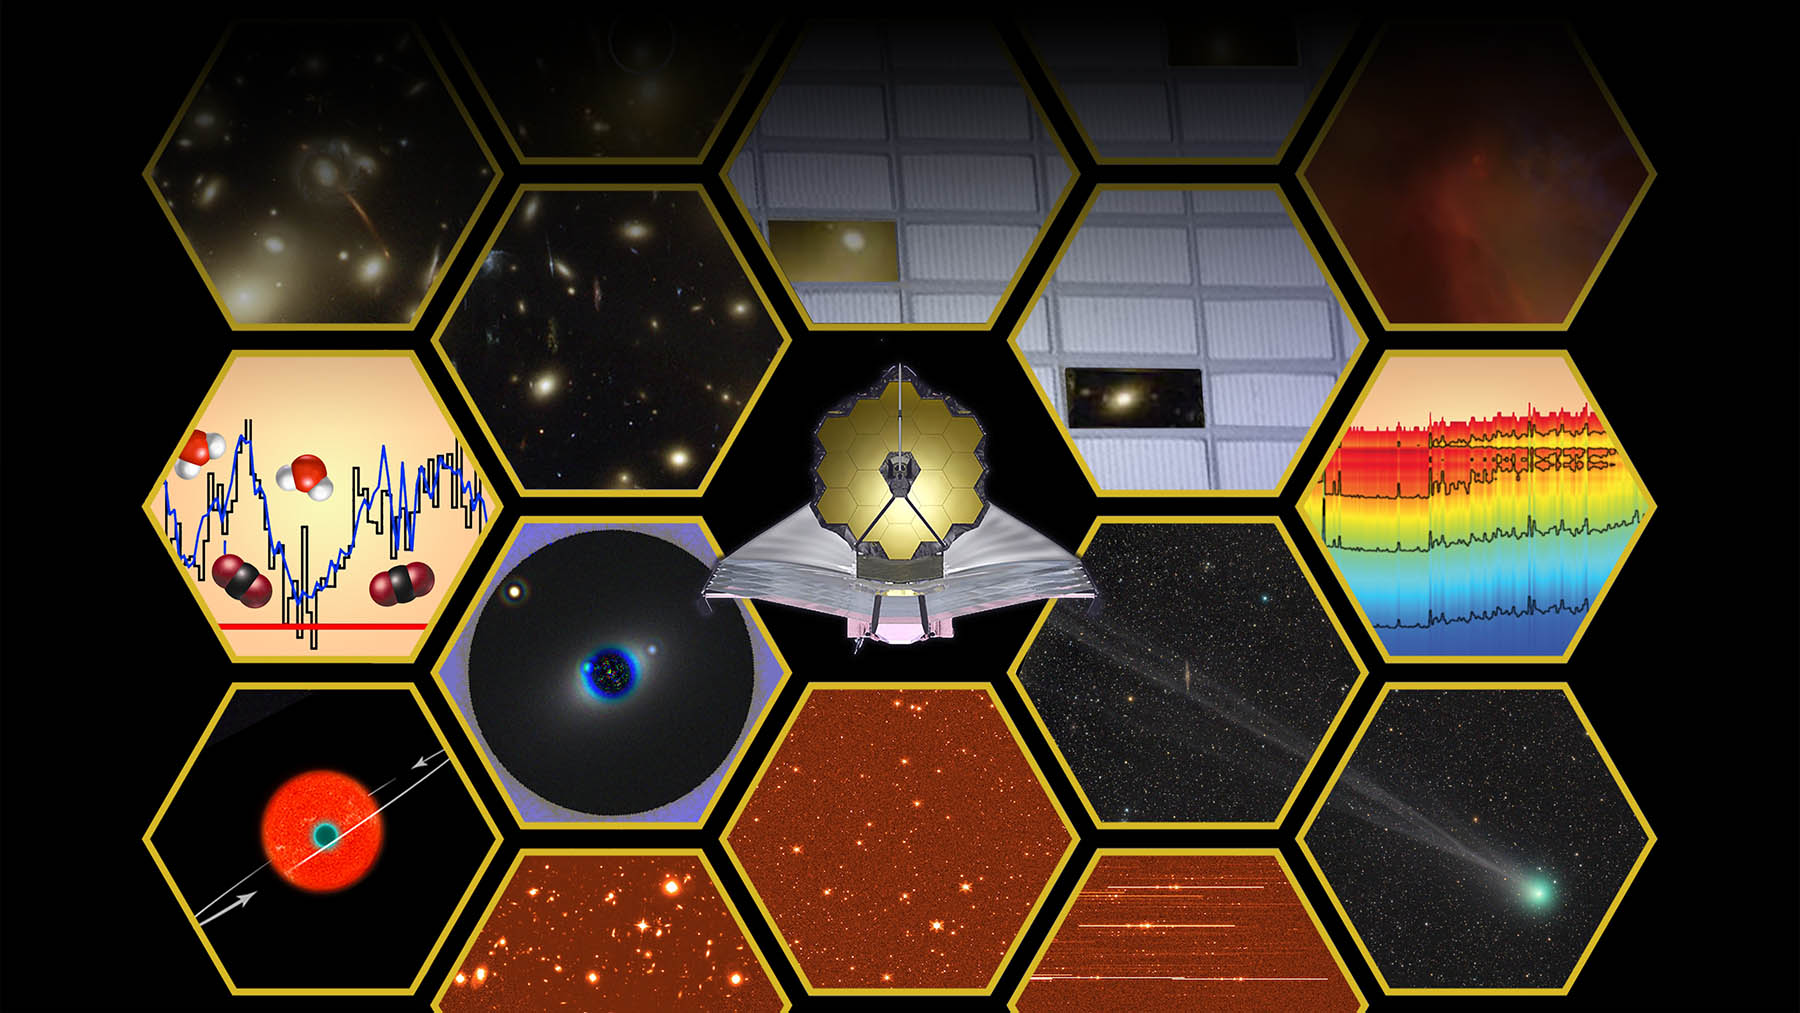 Hexagons on a black background  representing the mirrors of the Webb telescope filled with images of its scientific mission. This artist's illustration represents the scientific capabilities of NASA's James Webb Space Telescope. Both imaging and spectroscopy will be central to the Webb mission.